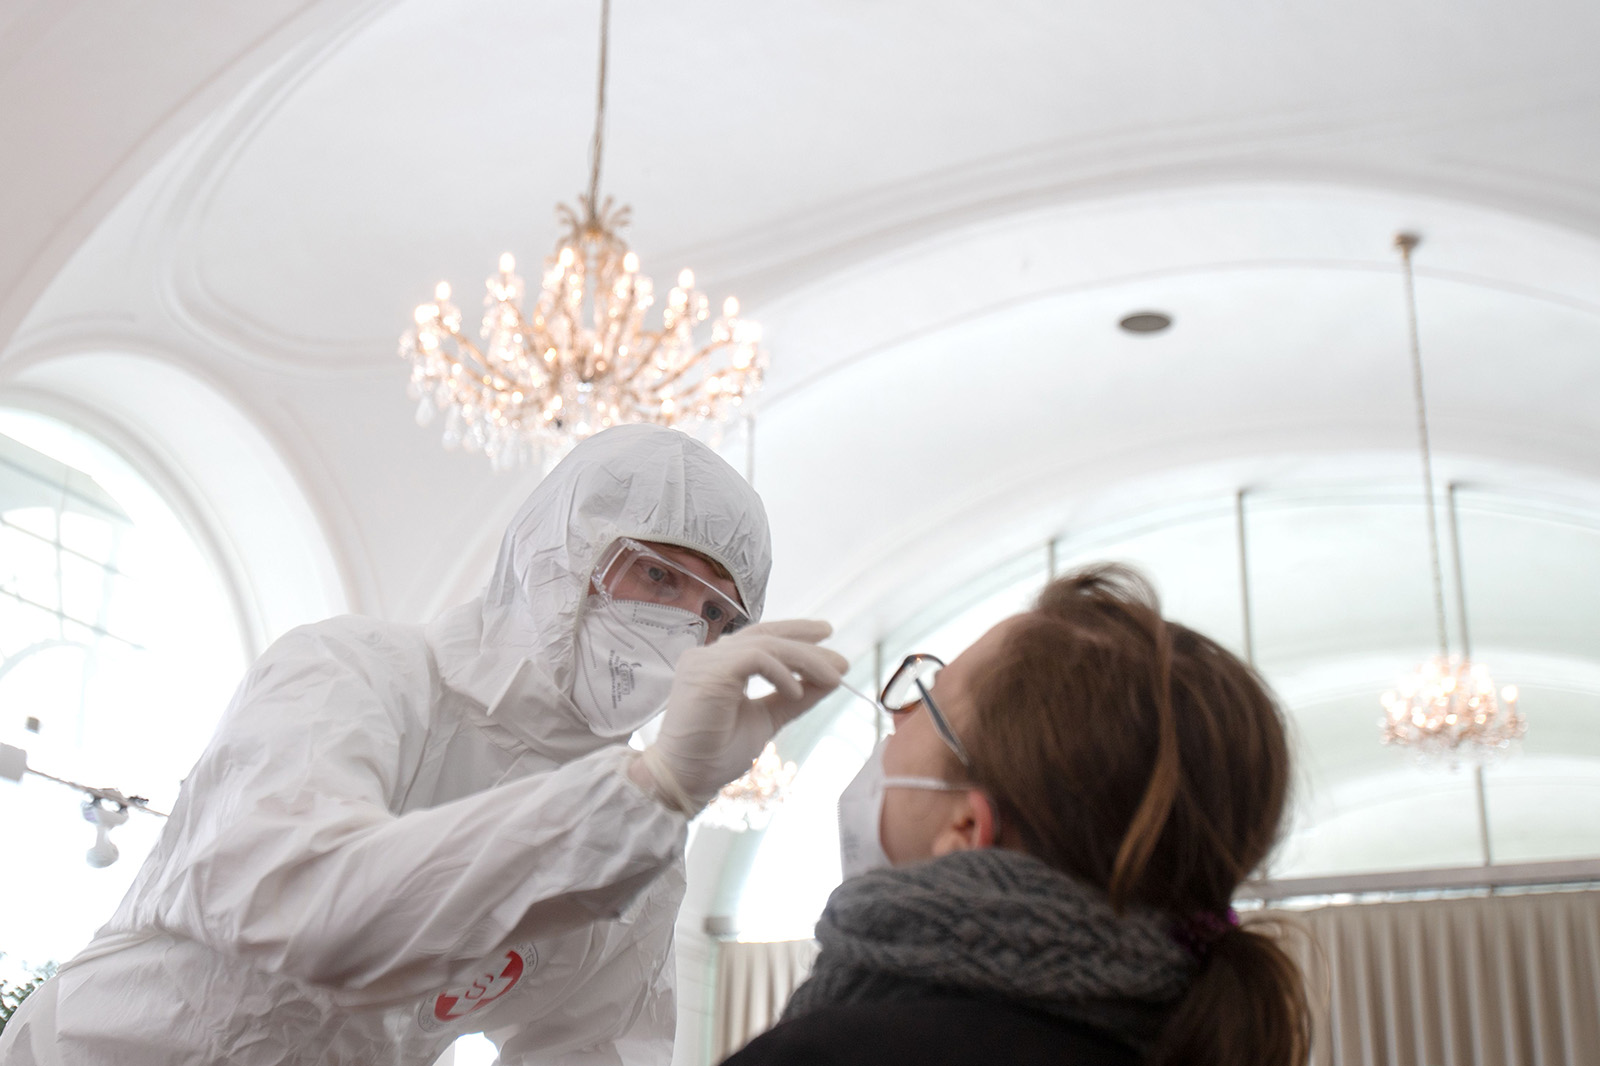 A health worker takes a coronavirus antigen rapid test swab at the new coronavirus test center in the Orangery of the Schoenbrunn Palace on February 4 in Vienna, Austria.